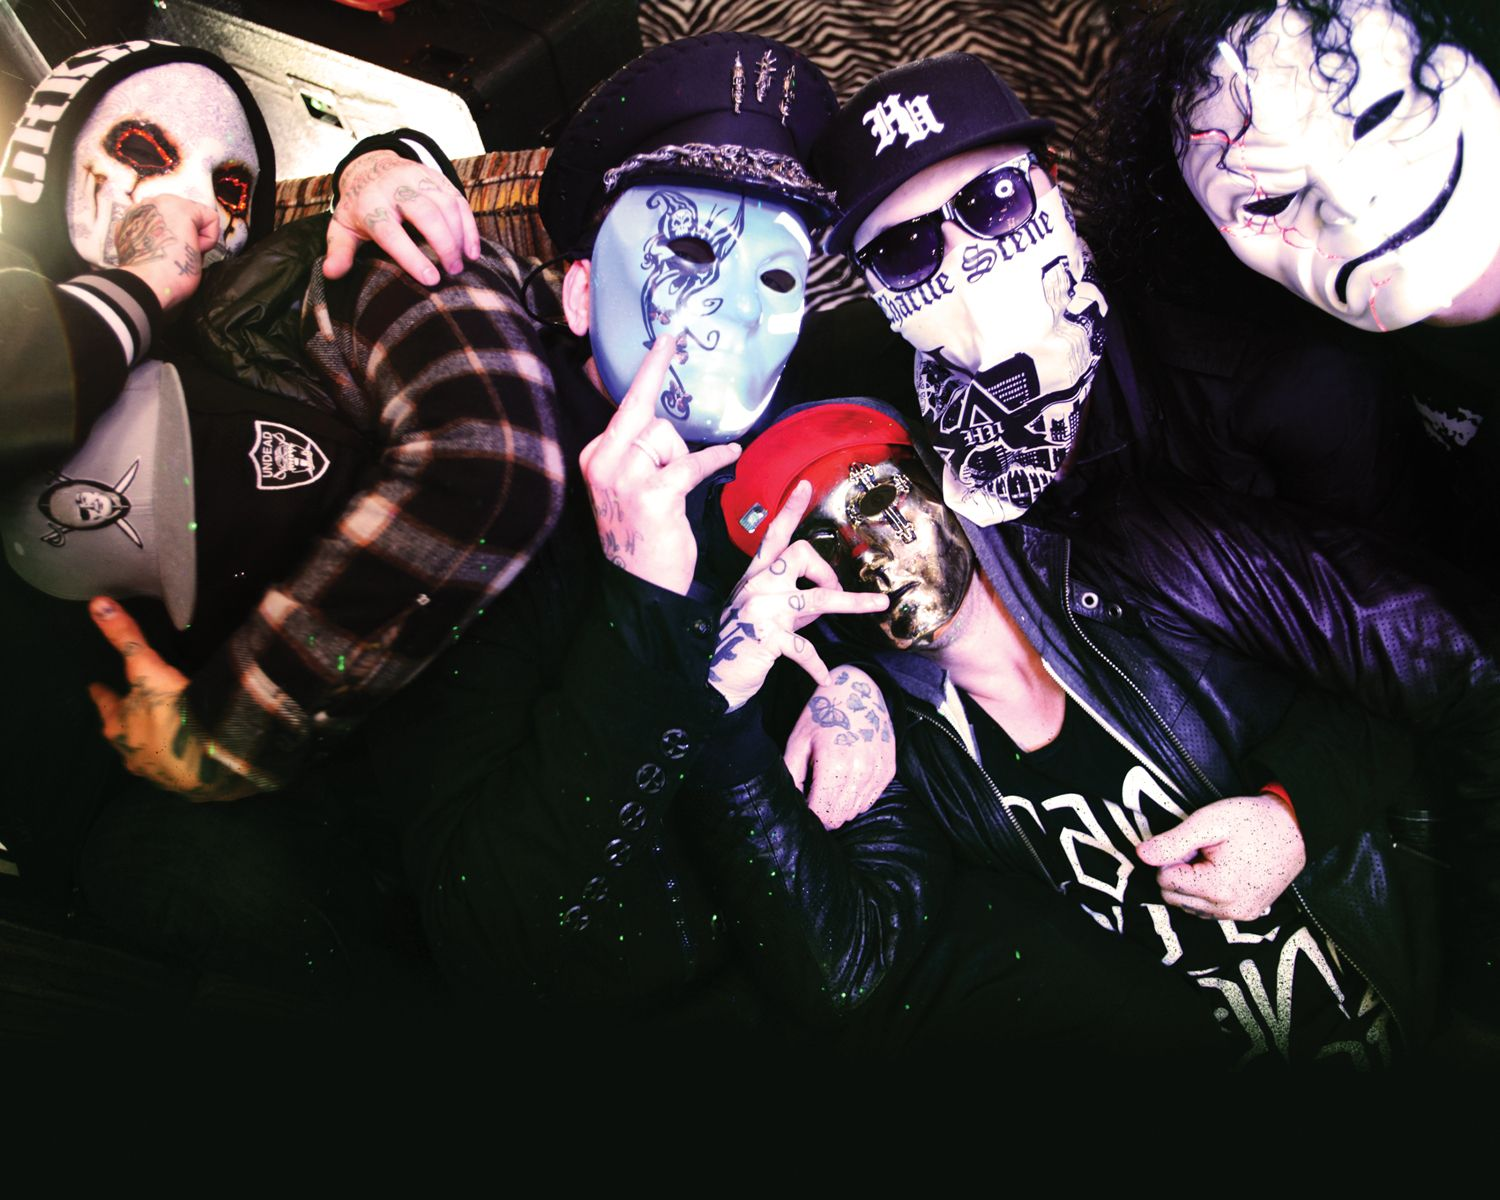 Best 12 Hollywood Undead images on Pinterest   Other